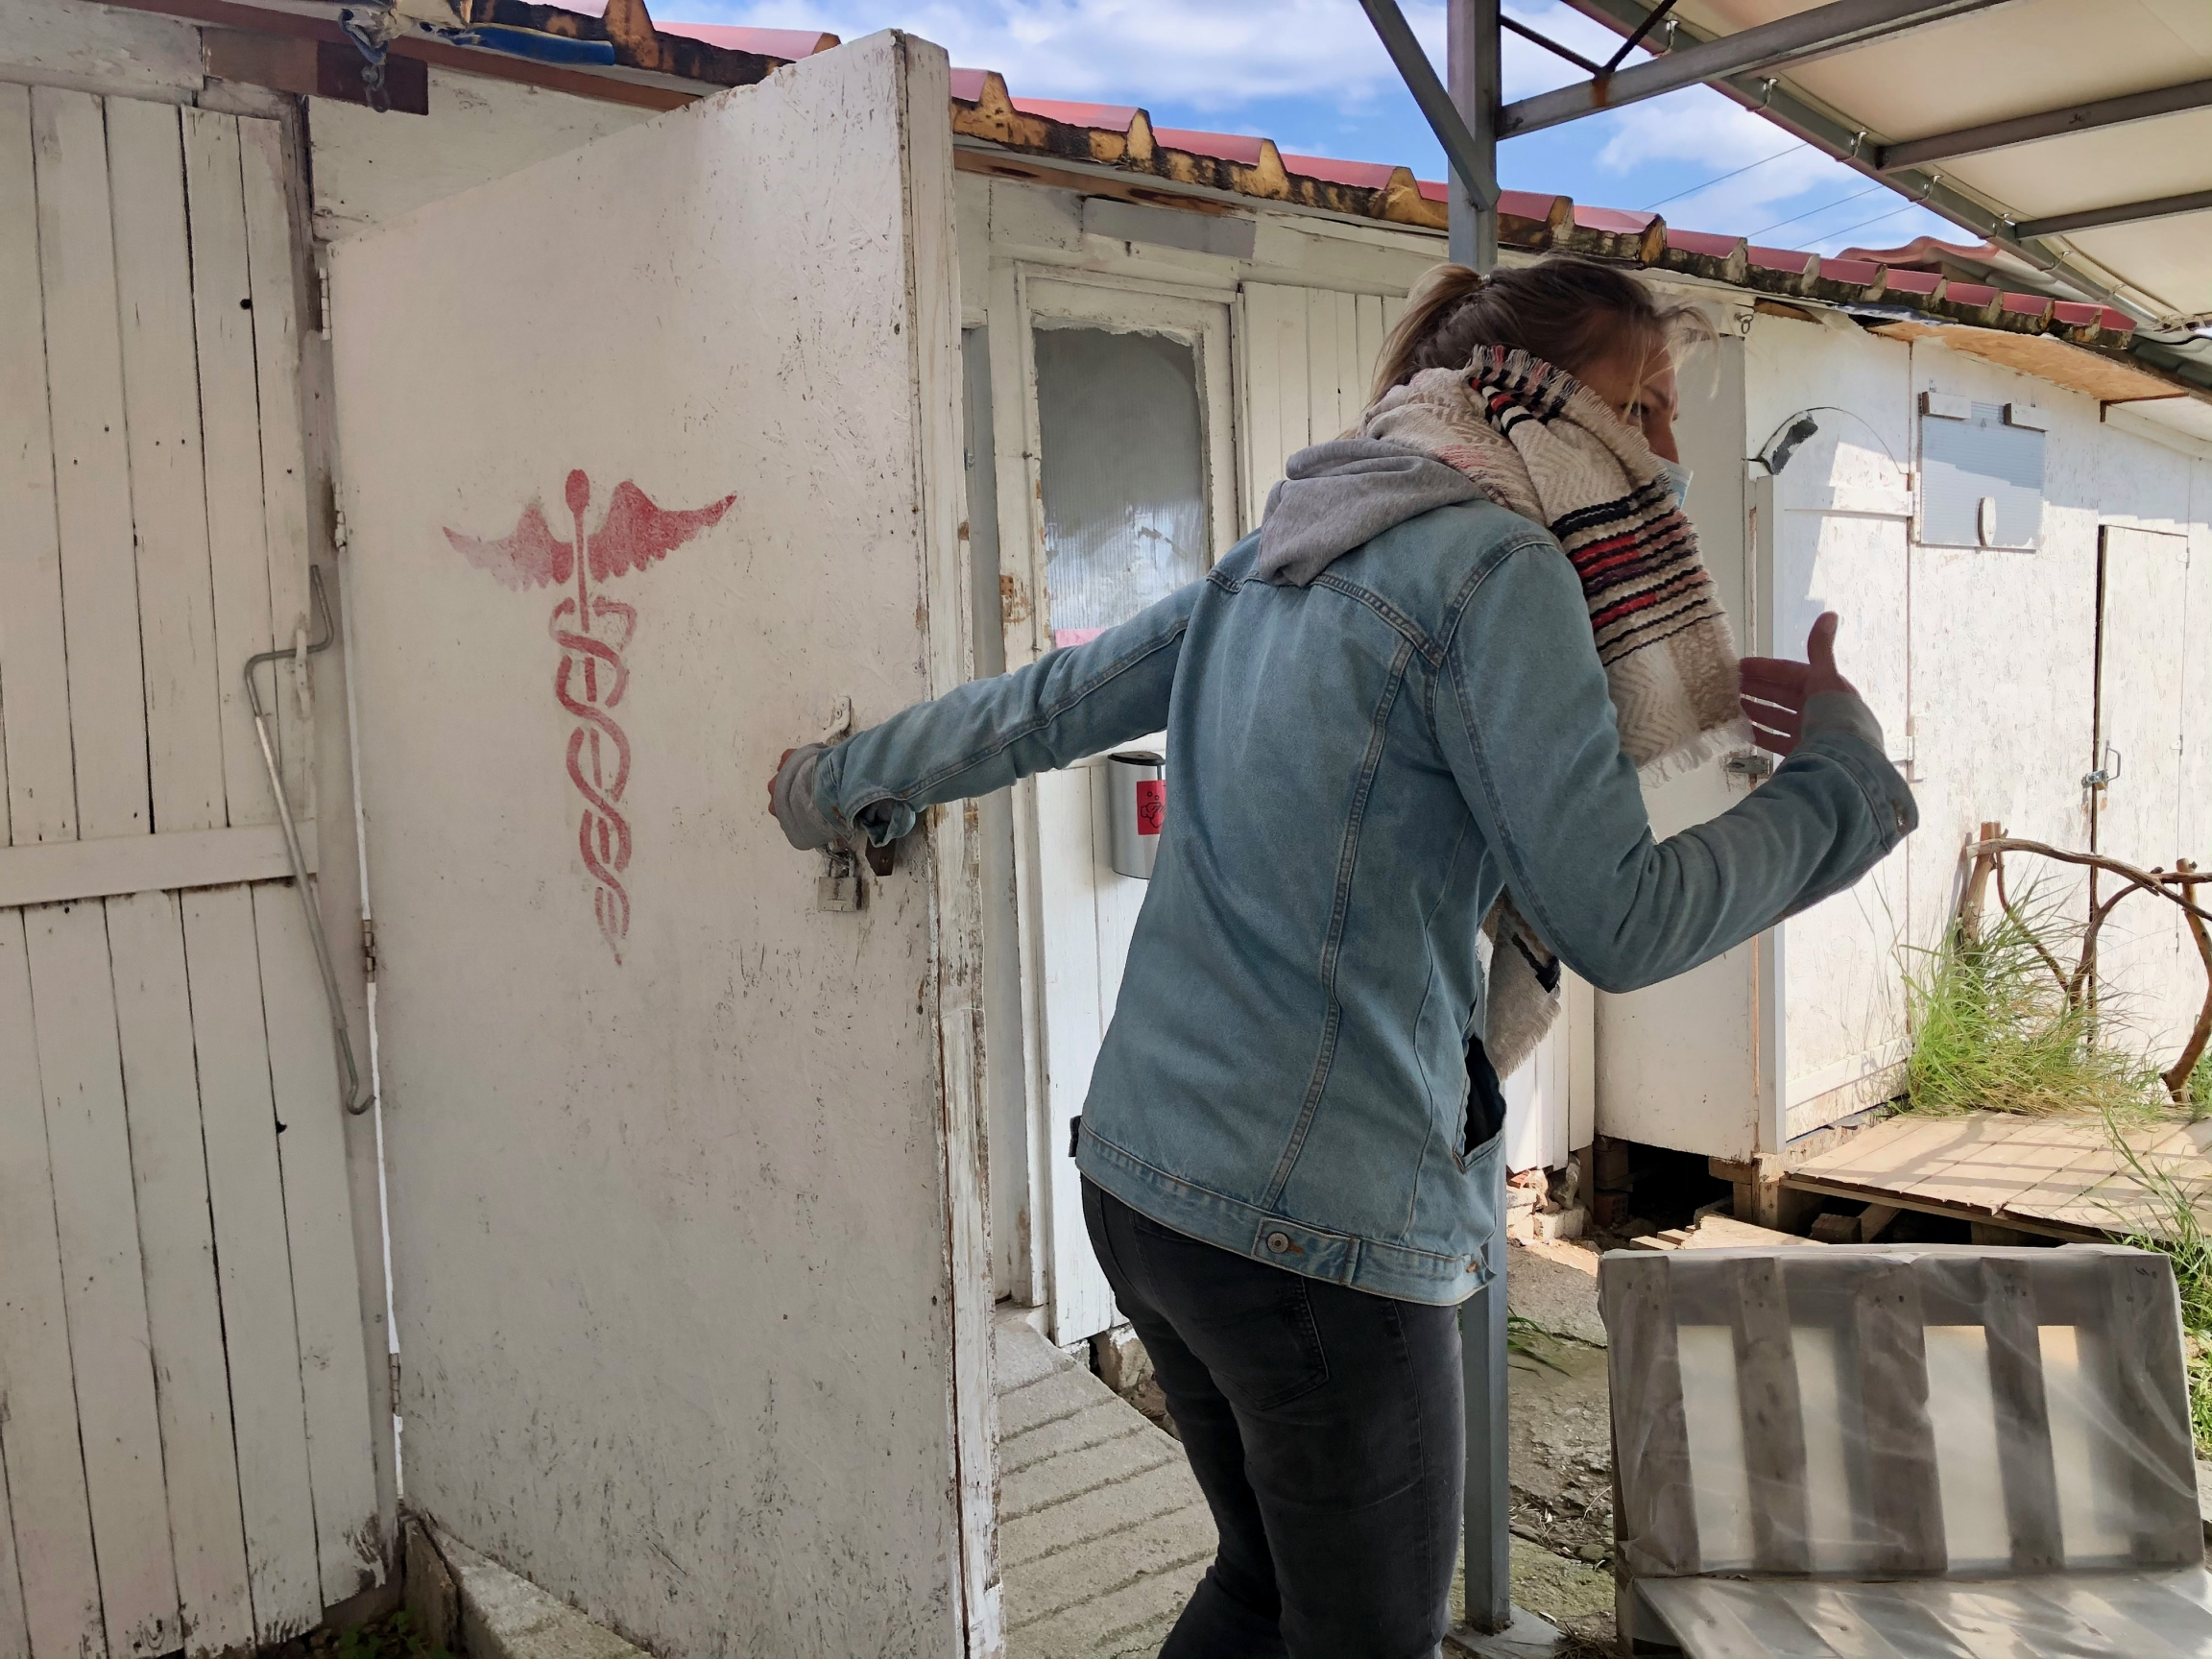 Tyra Eklund, mental health coordinator for Mental Volunteers International on Lesbos, enters MVI's clinic. MVI's programs, which are at capacity, support approximately 100 refugee children and adults, in groups and one-on-one.